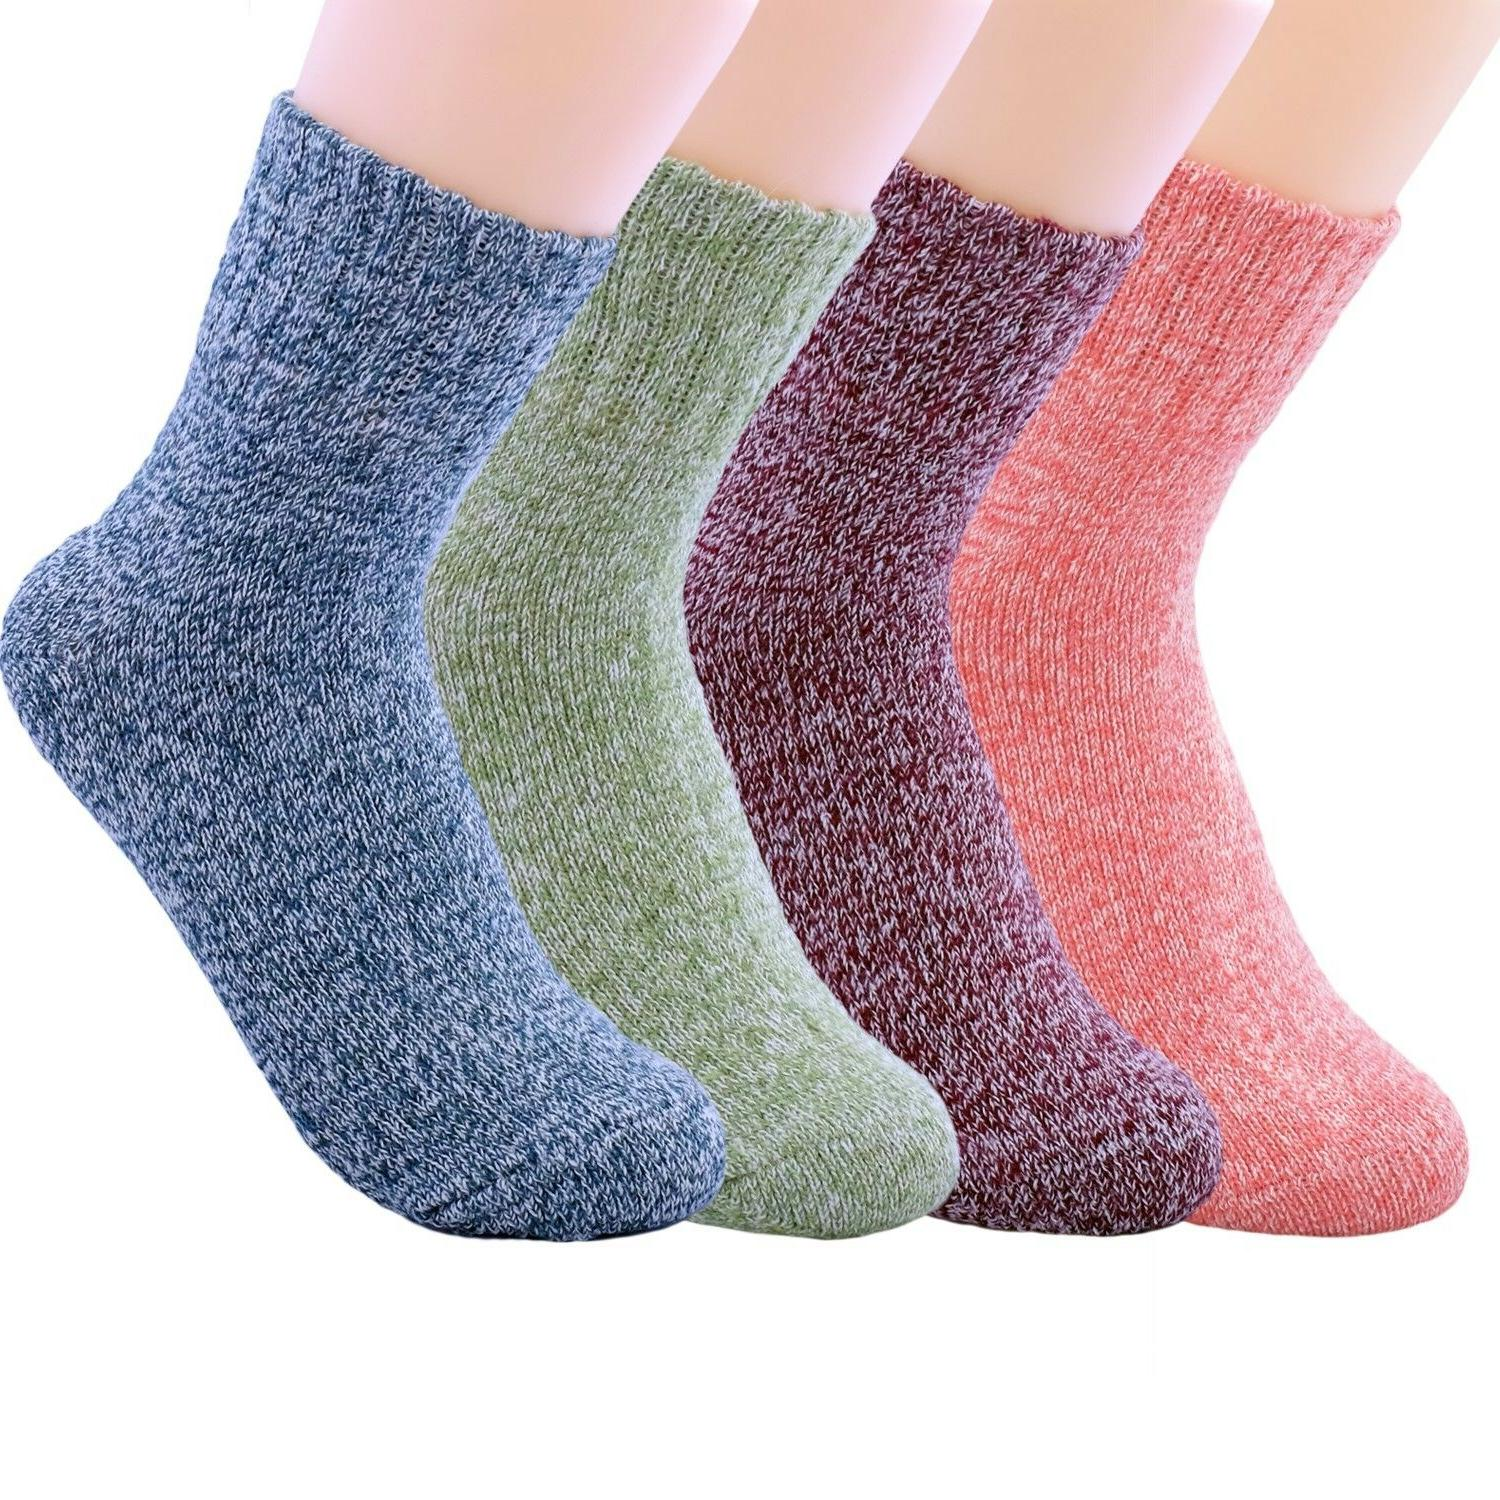 JOYCA & Co. 4 Pairs Women's Multicolor Blend Wool Cotton Thi